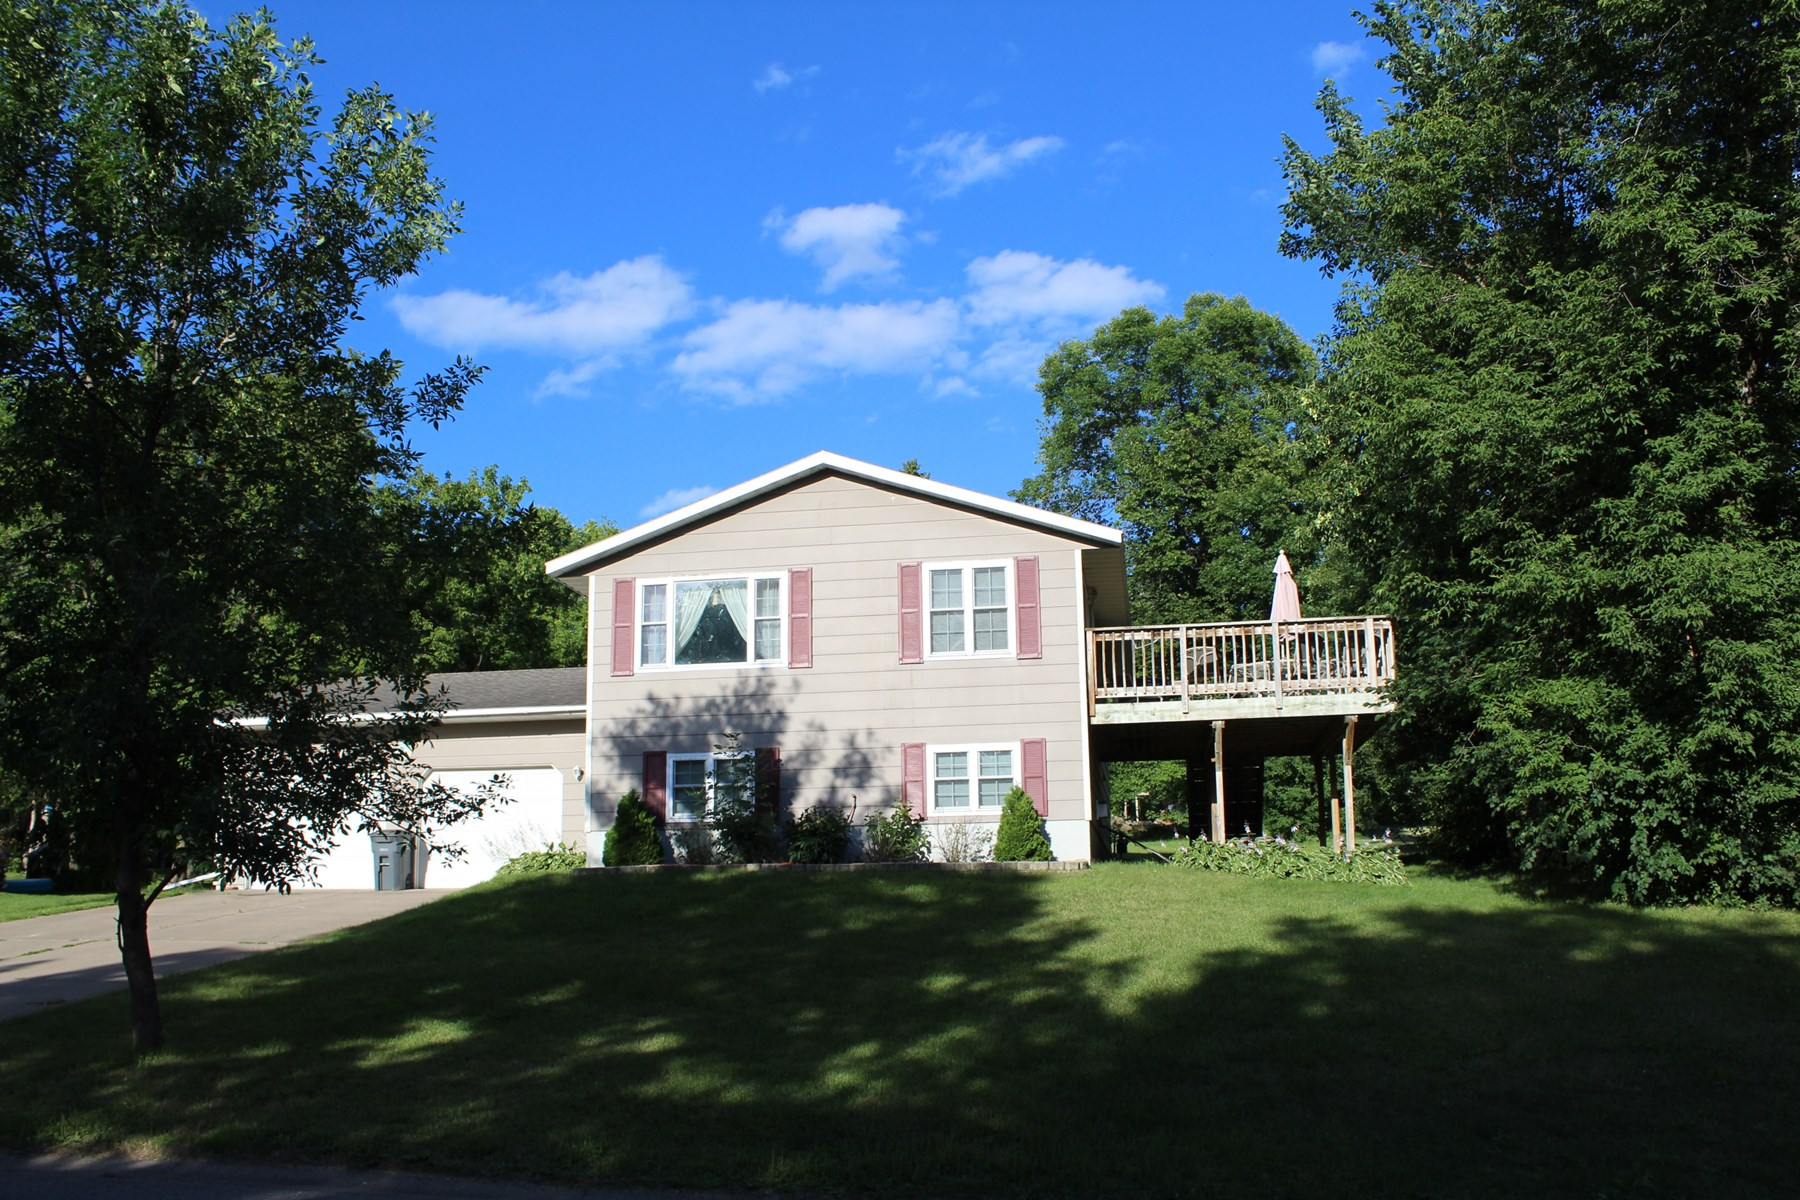 3BR/2BA Home on large lot in Milaca for Sale